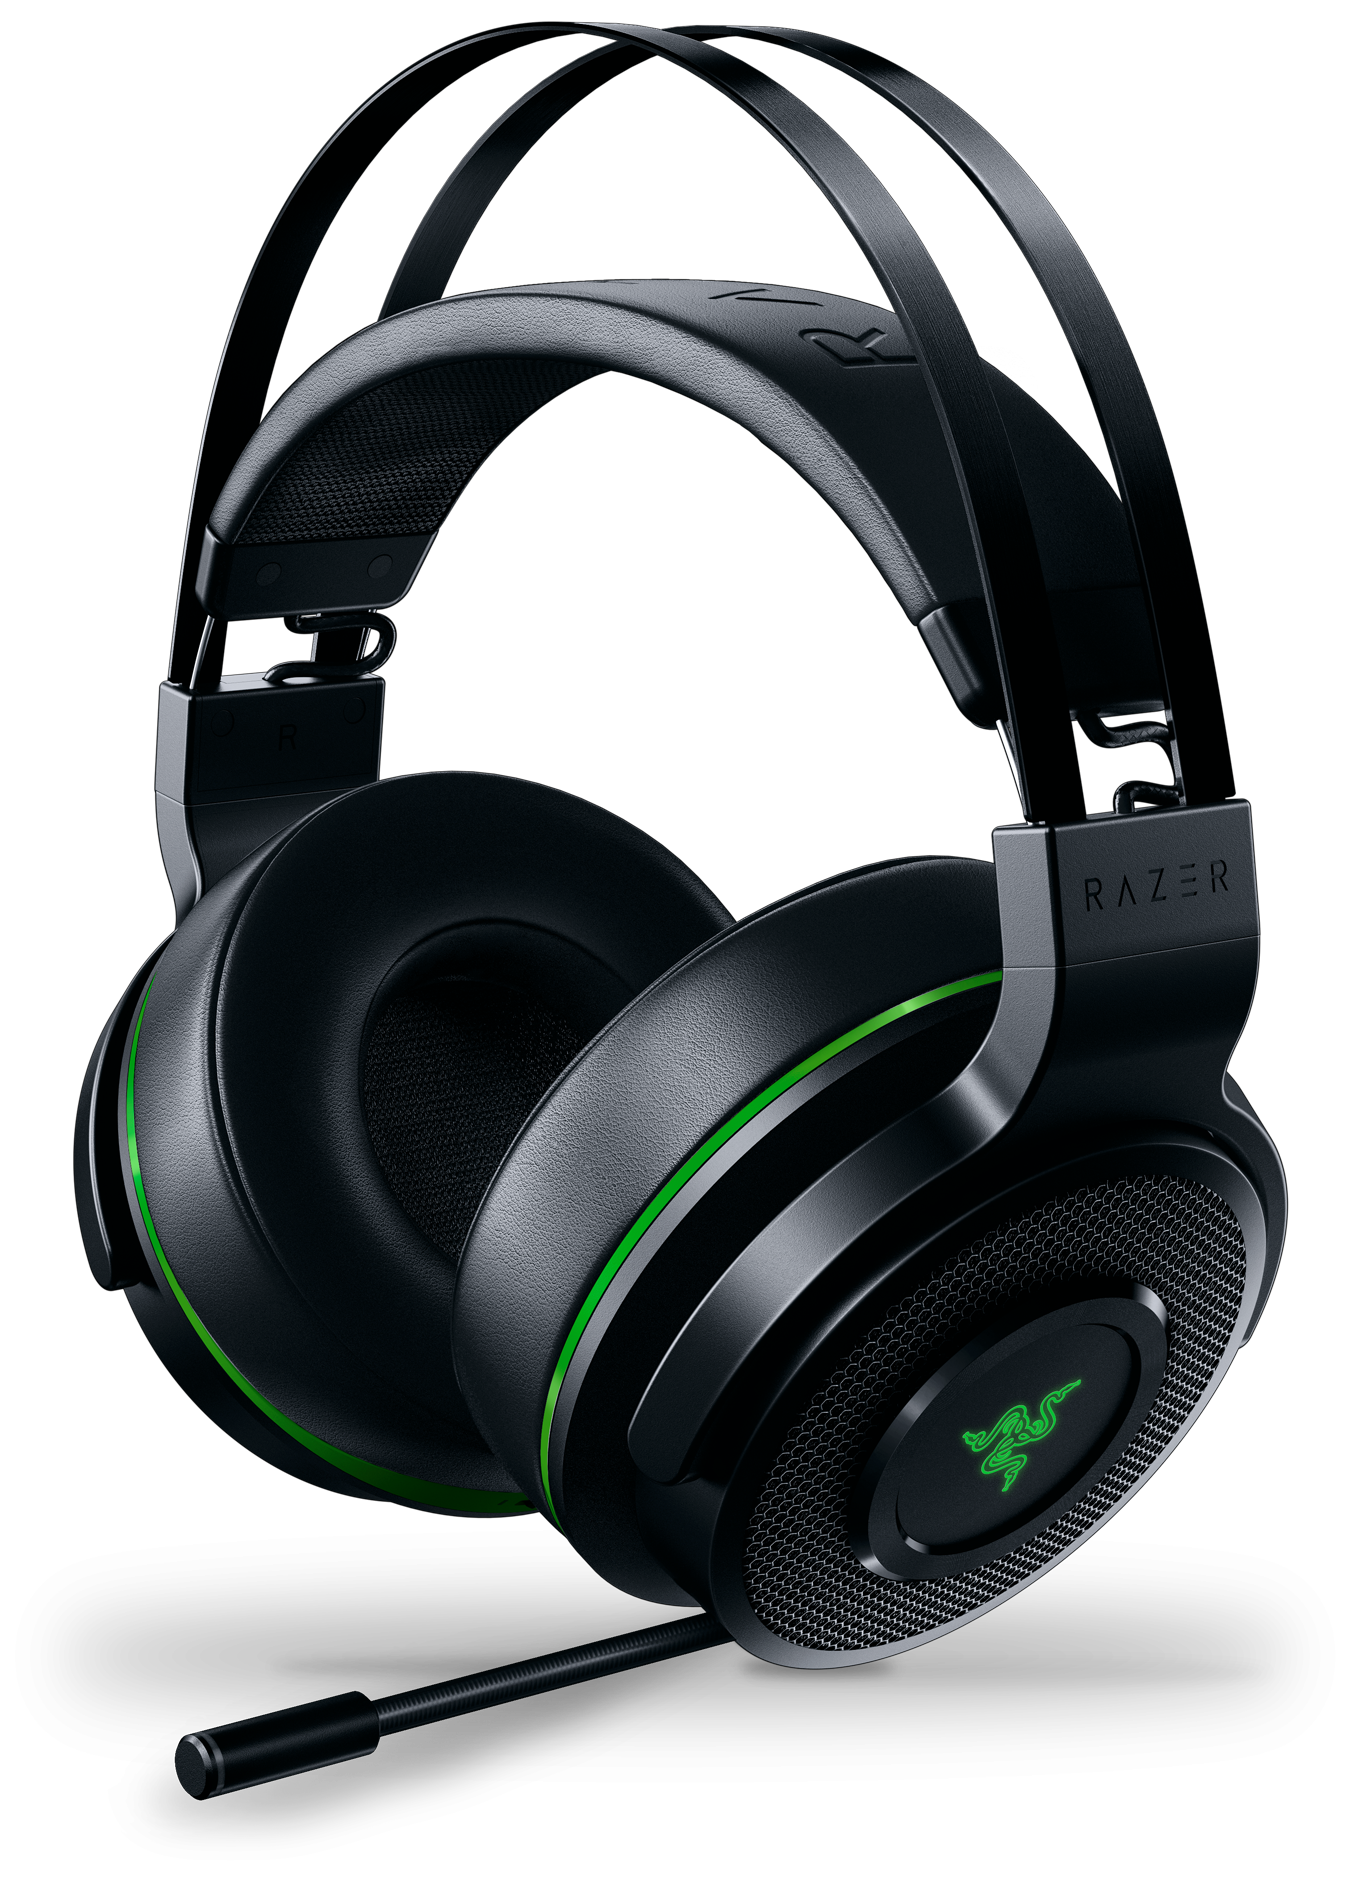 Razer Thresher Wireless Gaming Headset for Xbox One from a side angle